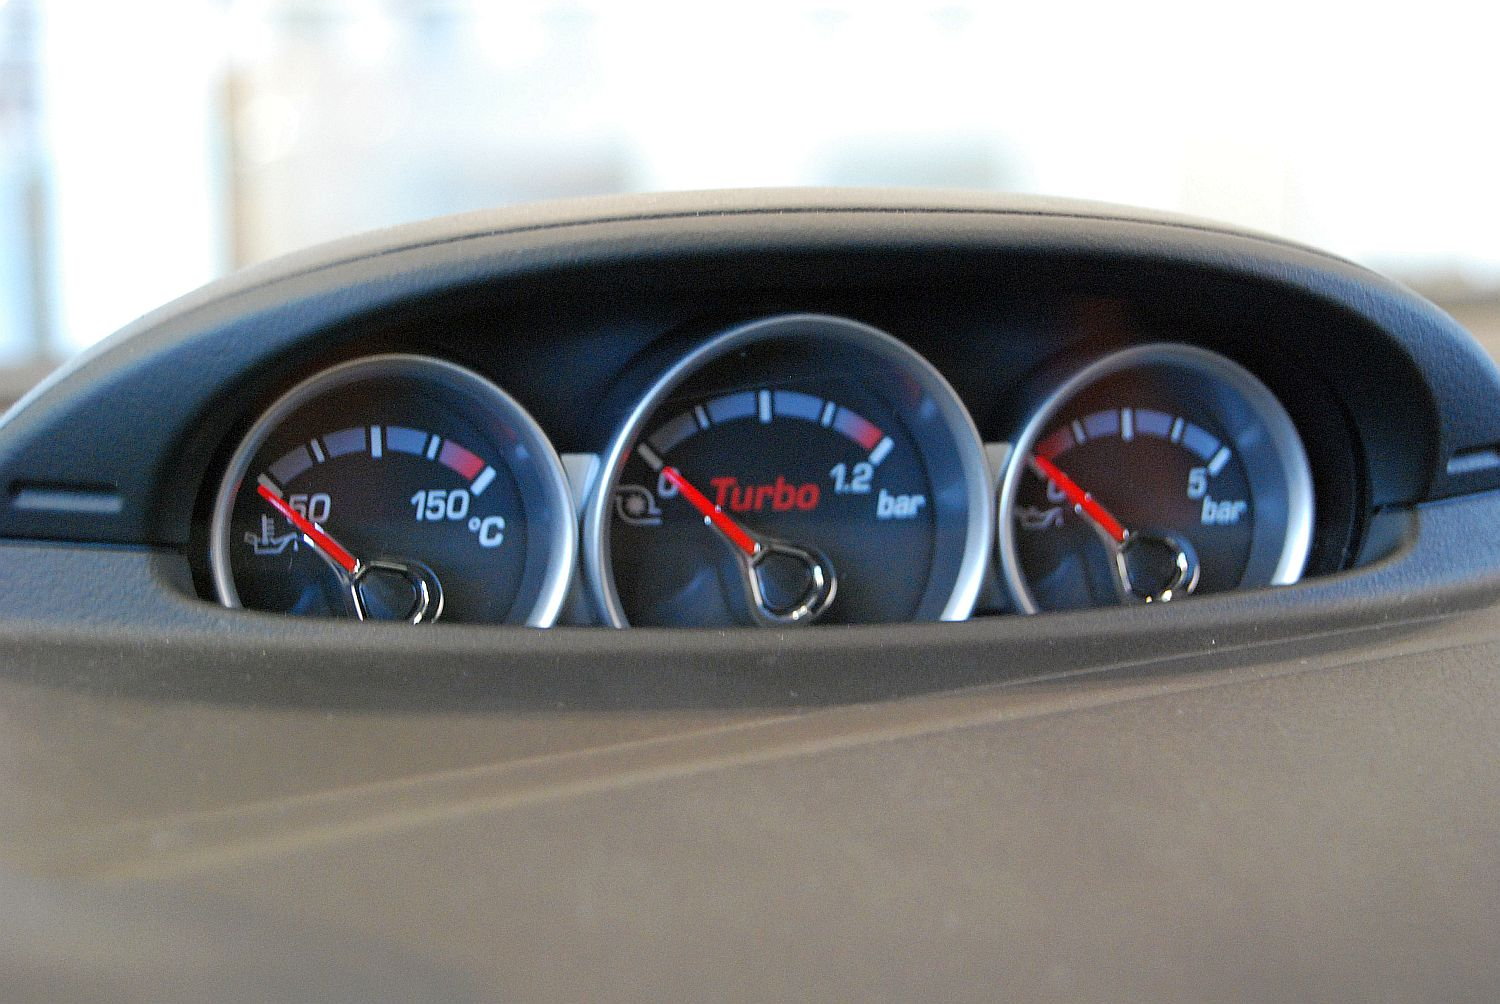 ford focus xr5 with 2701 Dash Top Gauge Cluster Upgrade 2 on 272021286651 also 152173099365 likewise FORD likewise Best Mods For Ford Focus St St250 Focus Mk Iii as well Ford Focus Wagon 2011.